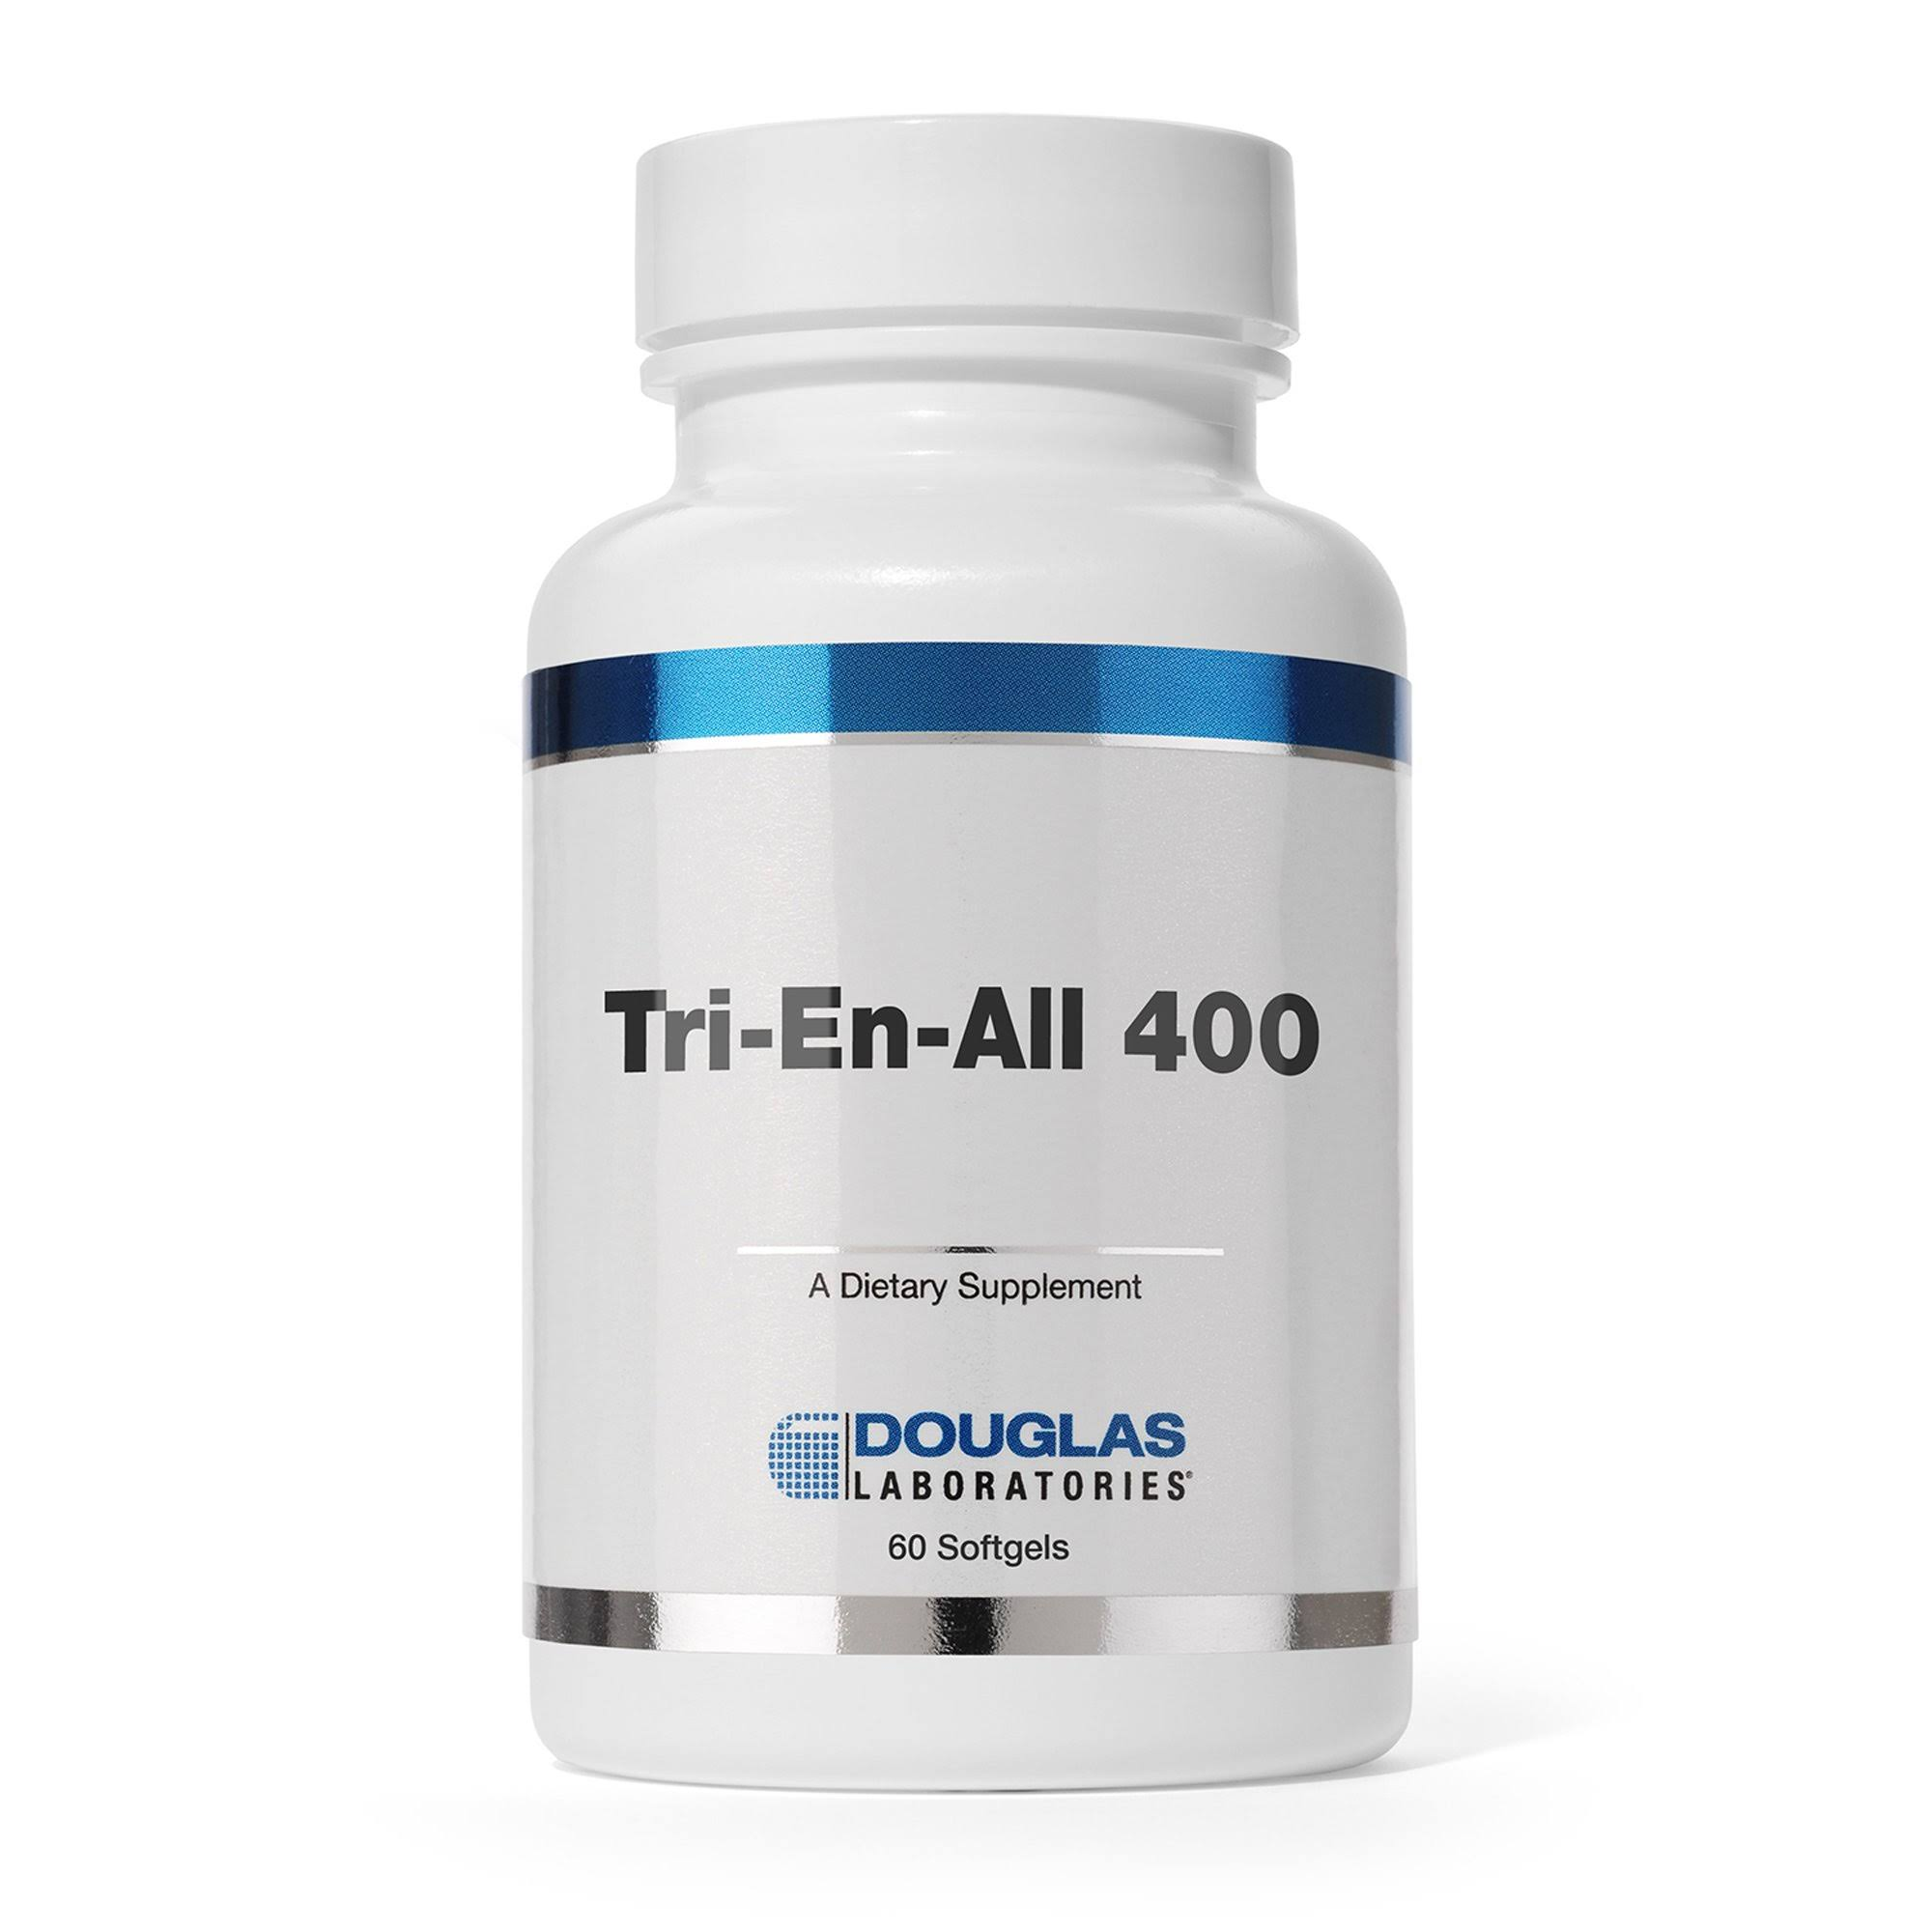 Douglas Laboratories Tri-En-All 400 Supplement - 60 Softgels